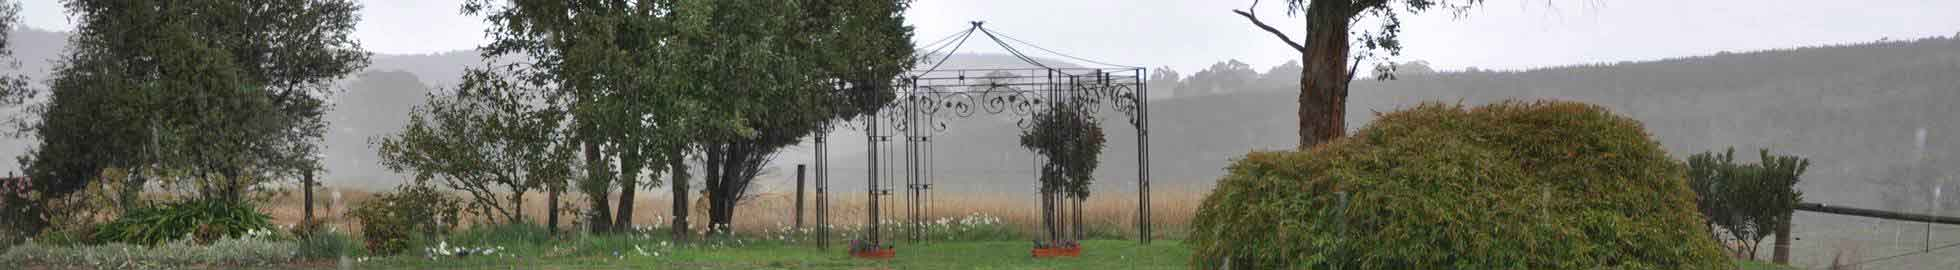 gazebo in country garden